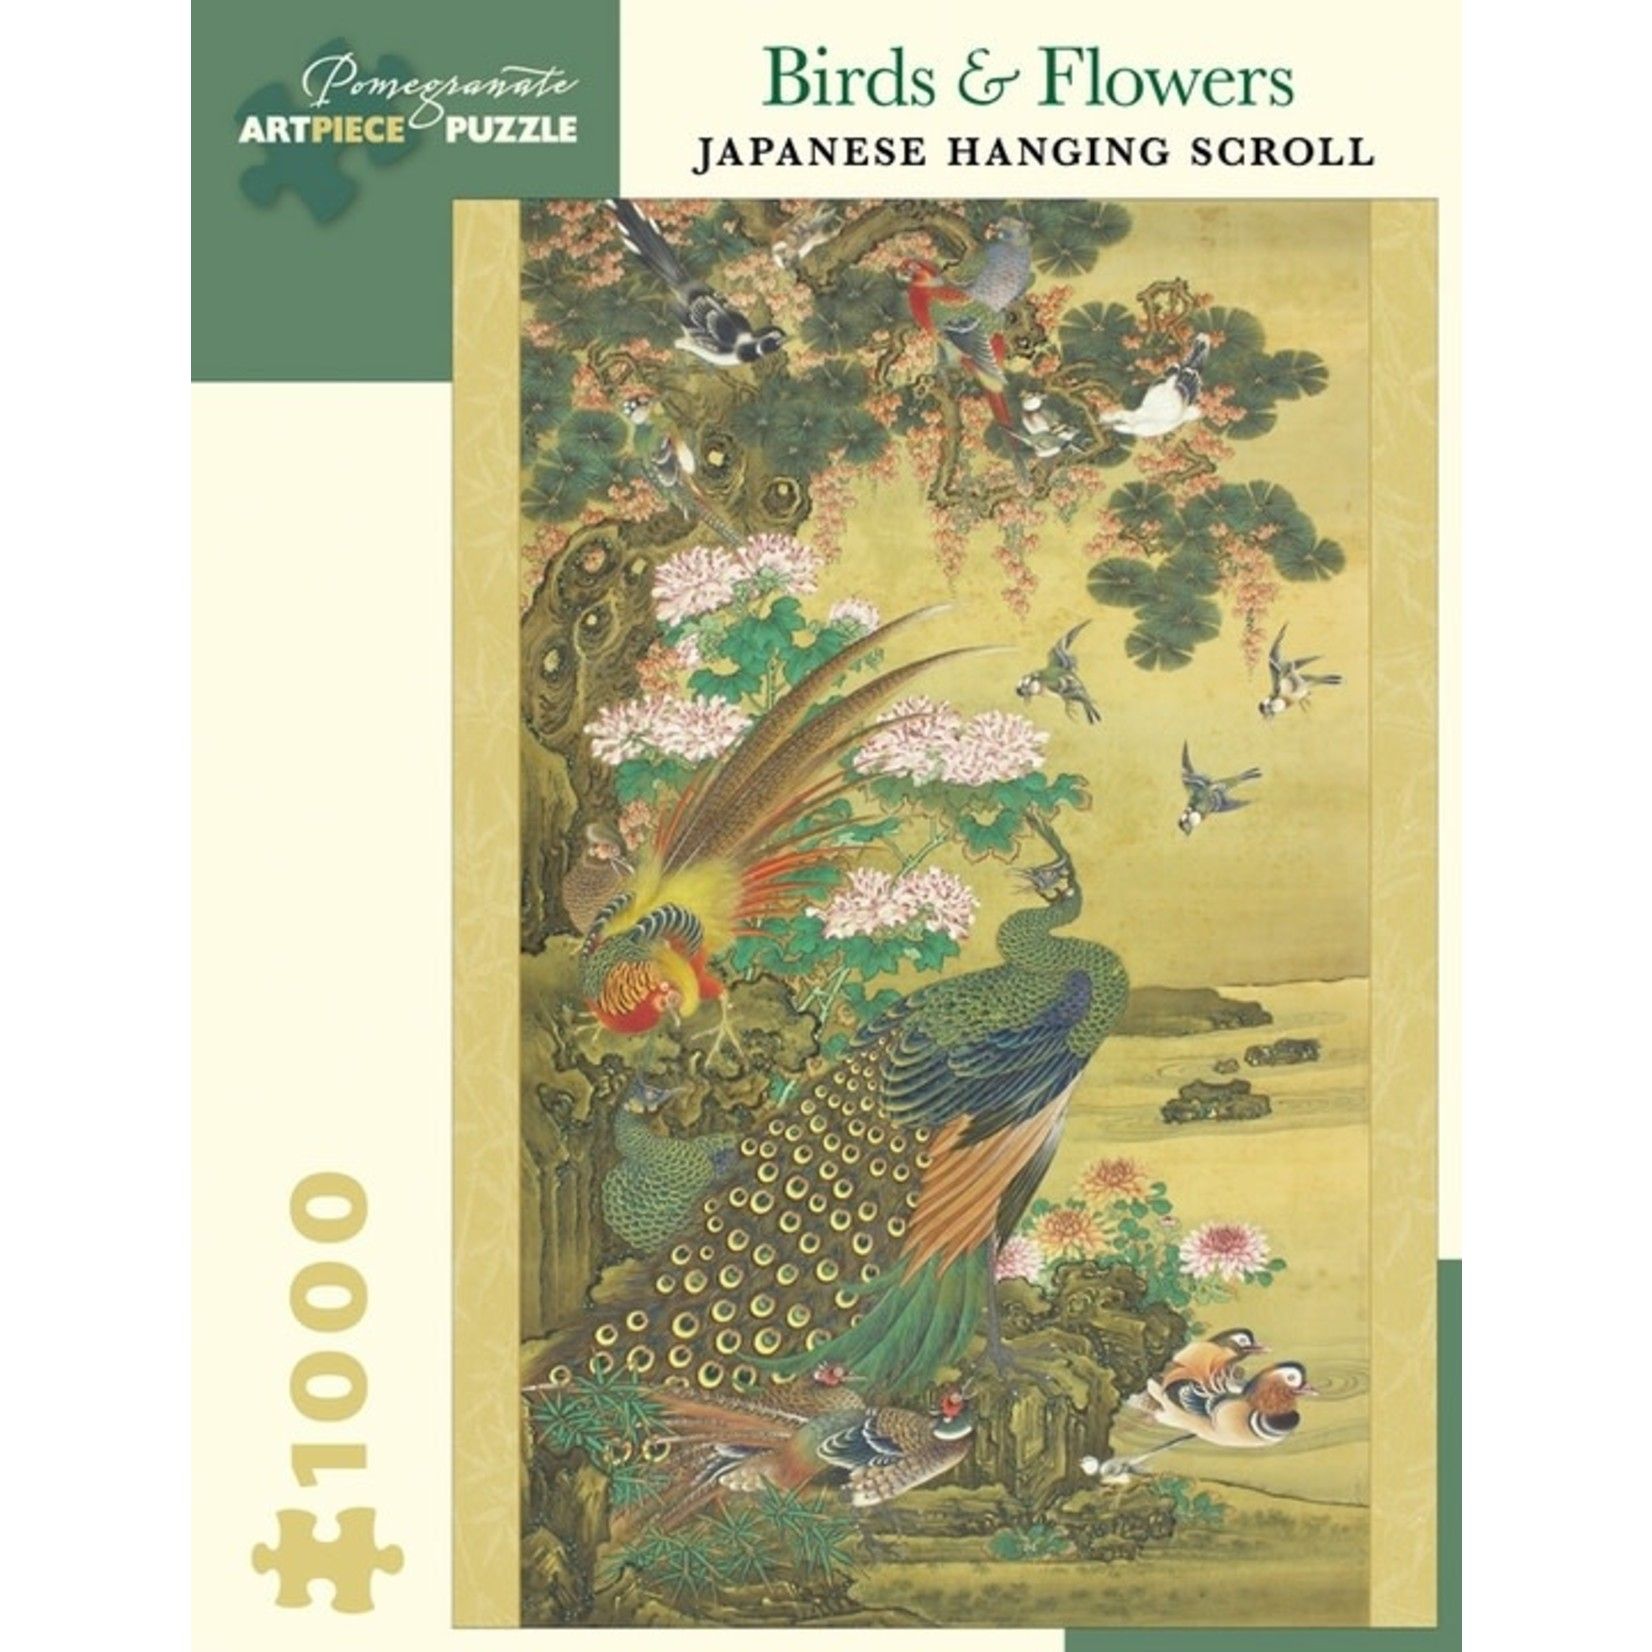 Pomegranate Birds & Flowers: Japanese Hanging Scroll (1000 pieces)